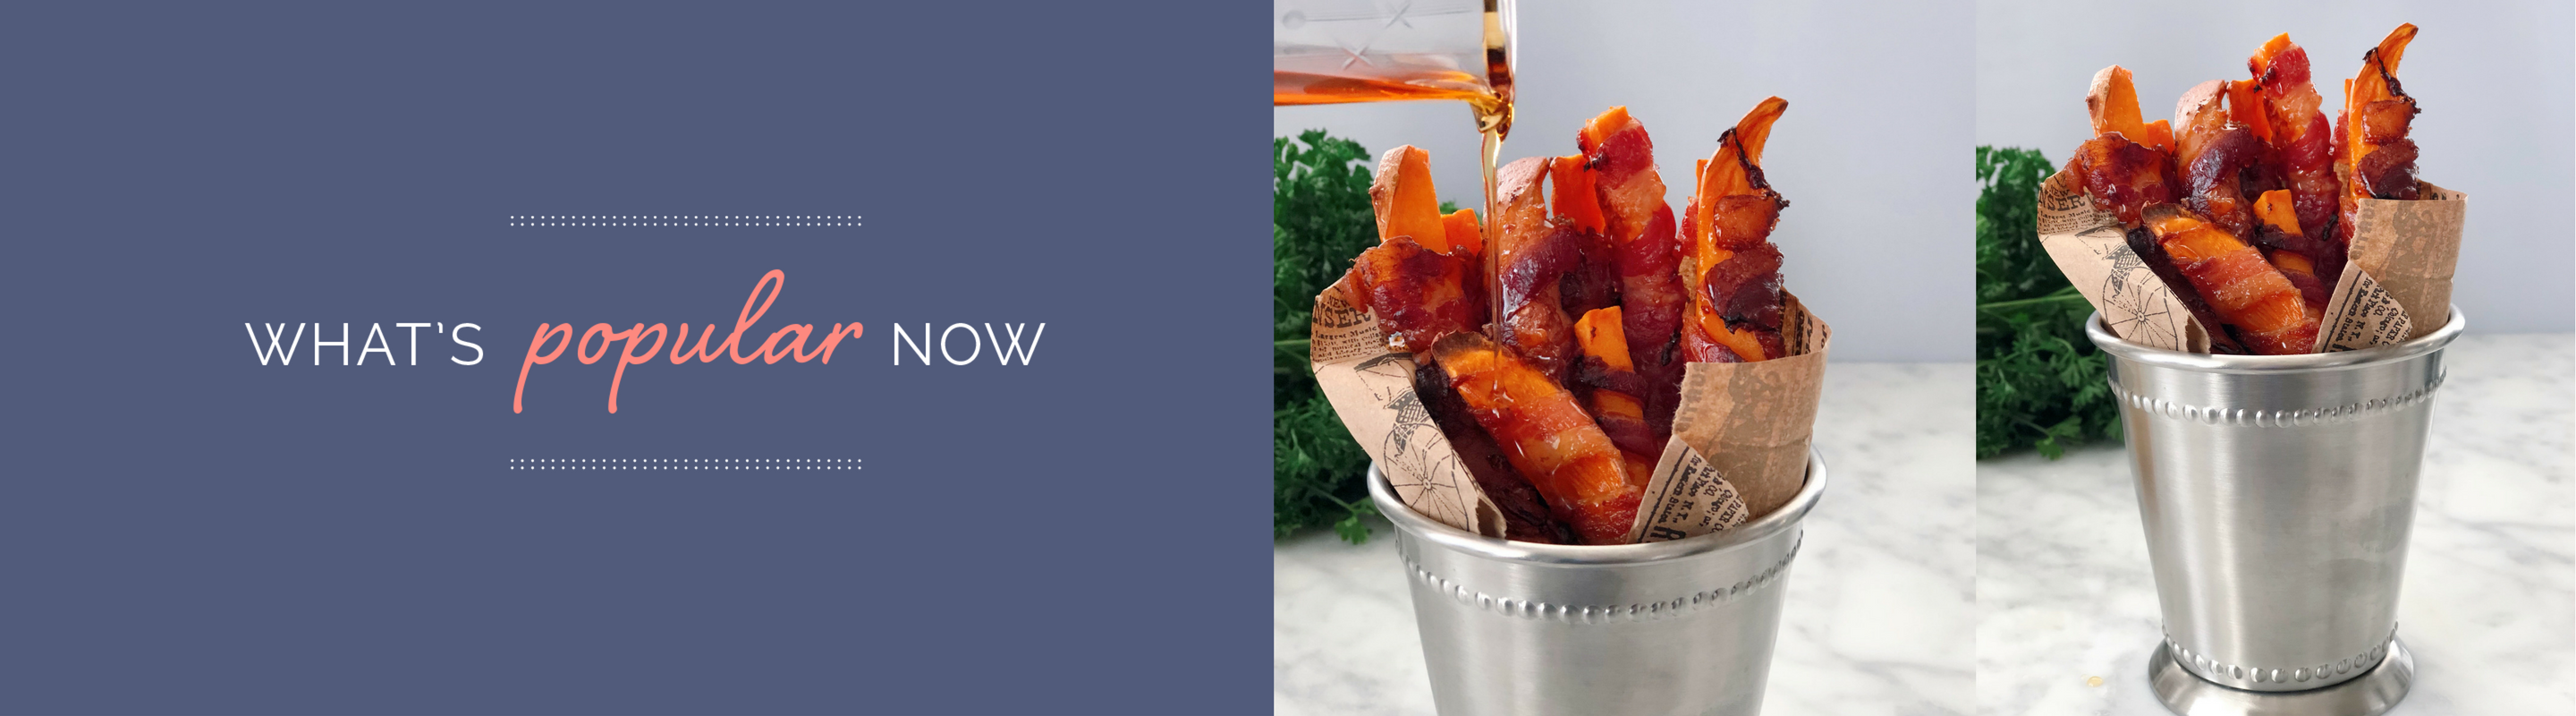 Whats Popular Now – Bacon Wrapped Sweet Potato Fries (1)